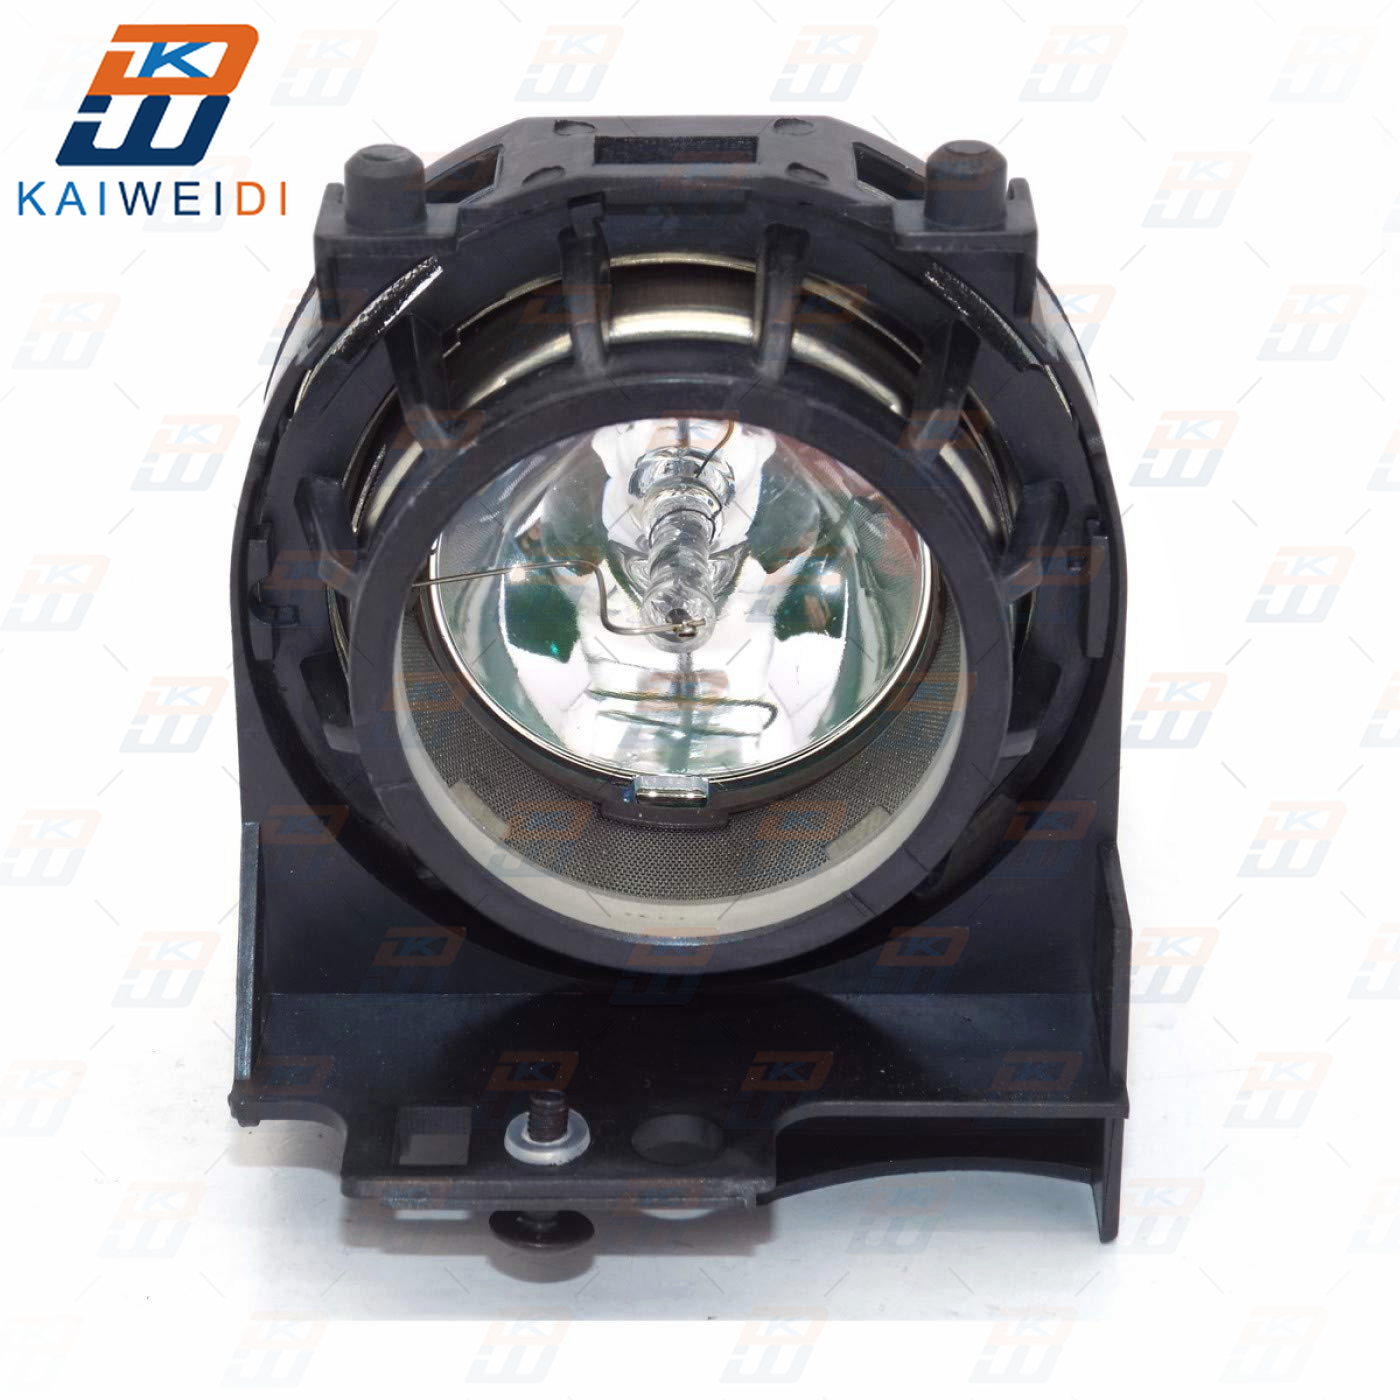 78-6969-9693-9 DT00581 RLC-008 Lamp For 3m For Hitachi For Viewsonic CP-HS800 CP-S210 S210F S210W S210WT H10 PJ510 PJ-LC5 S10